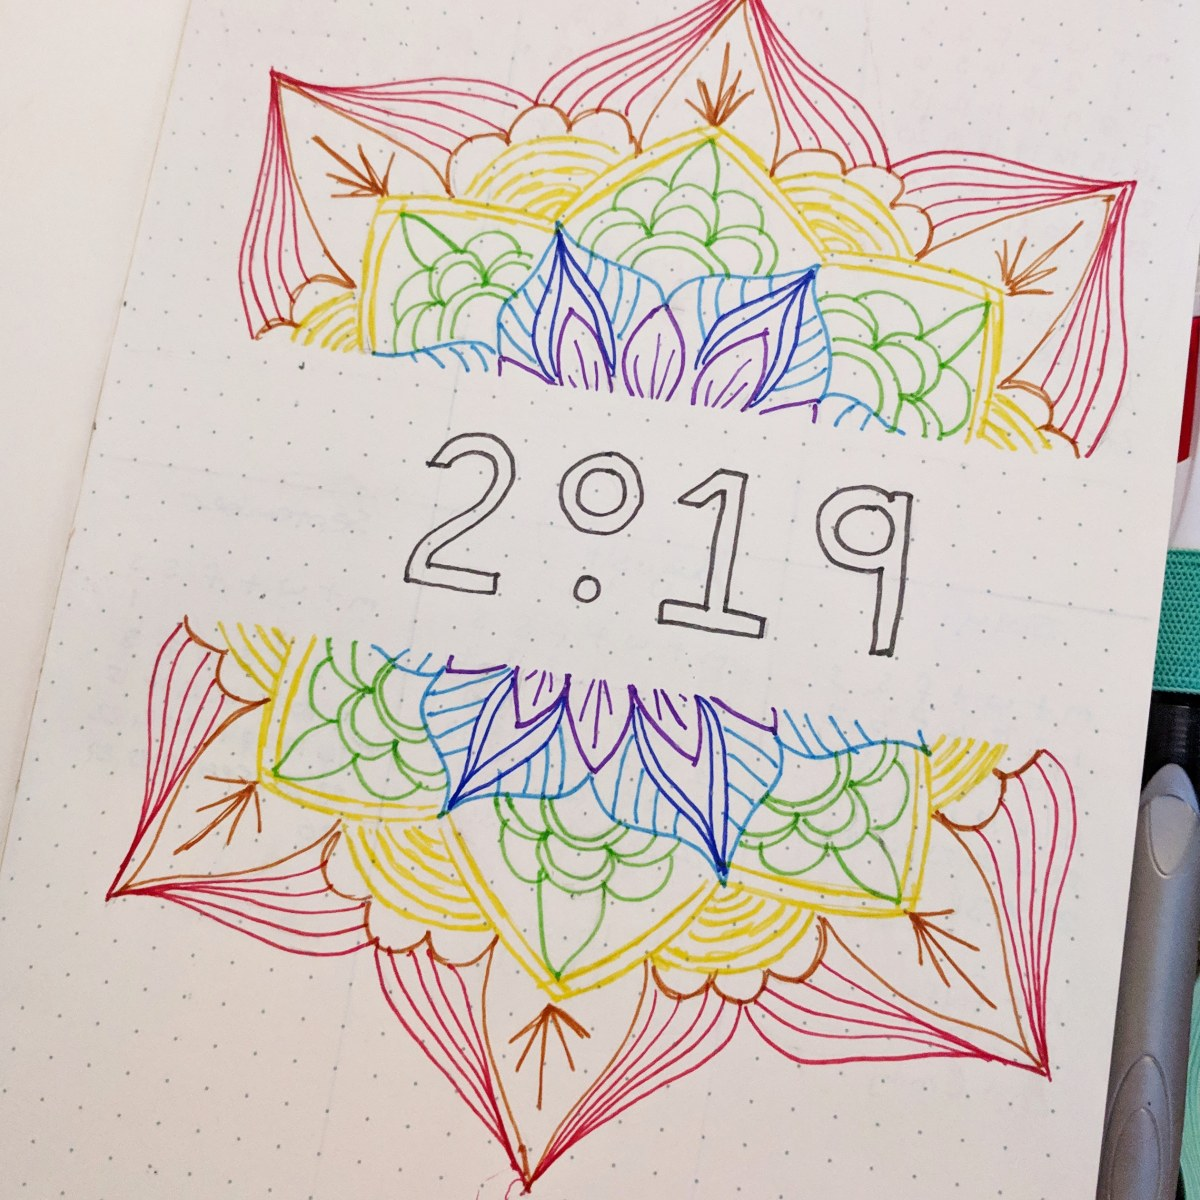 2019 - The Year of Me